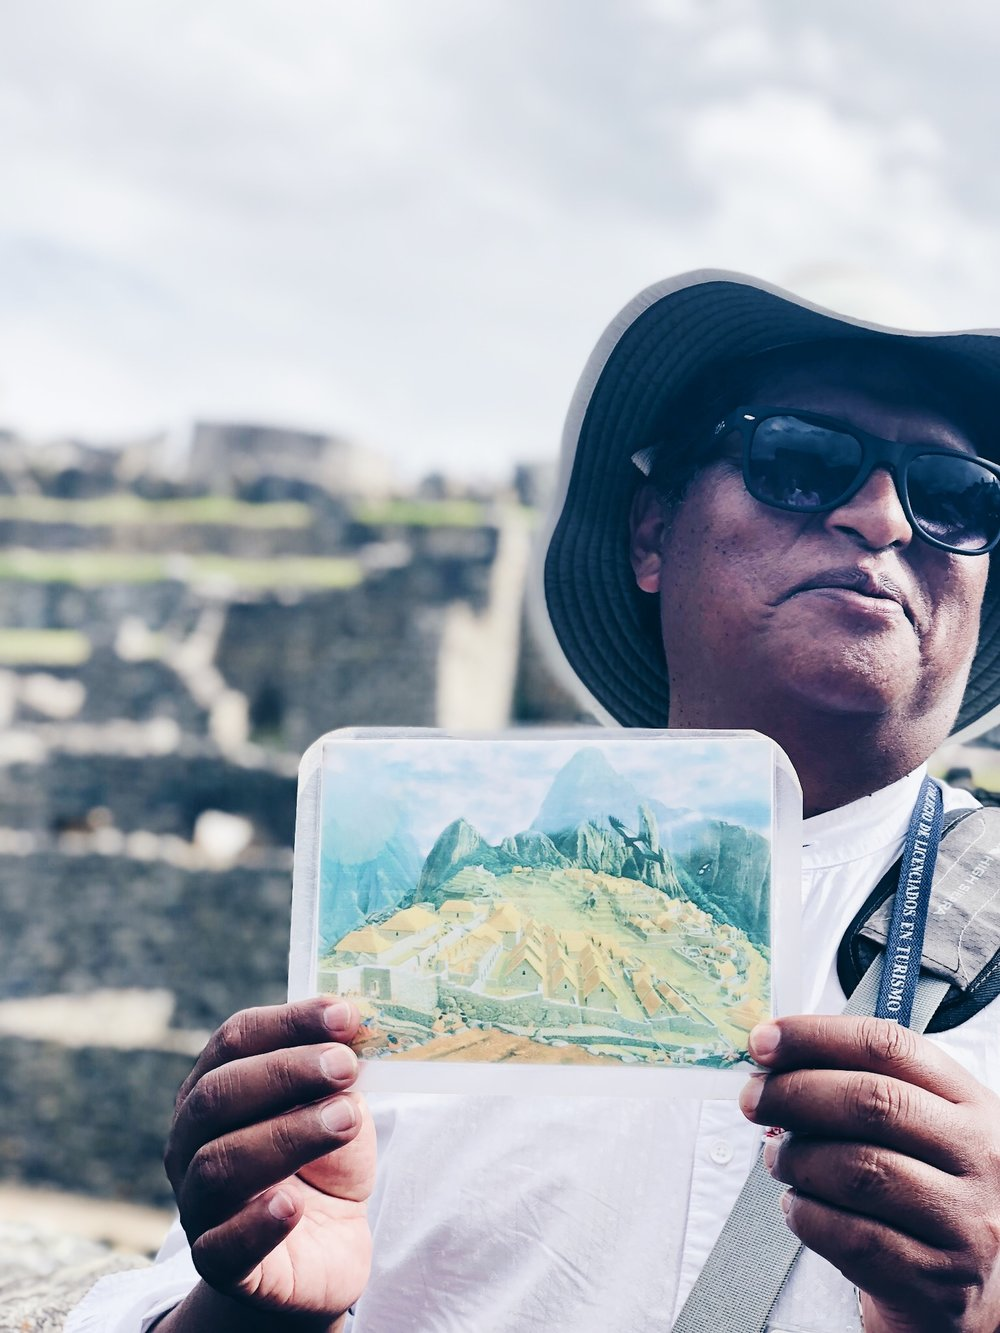 Our tour guide at Machu Picchu.